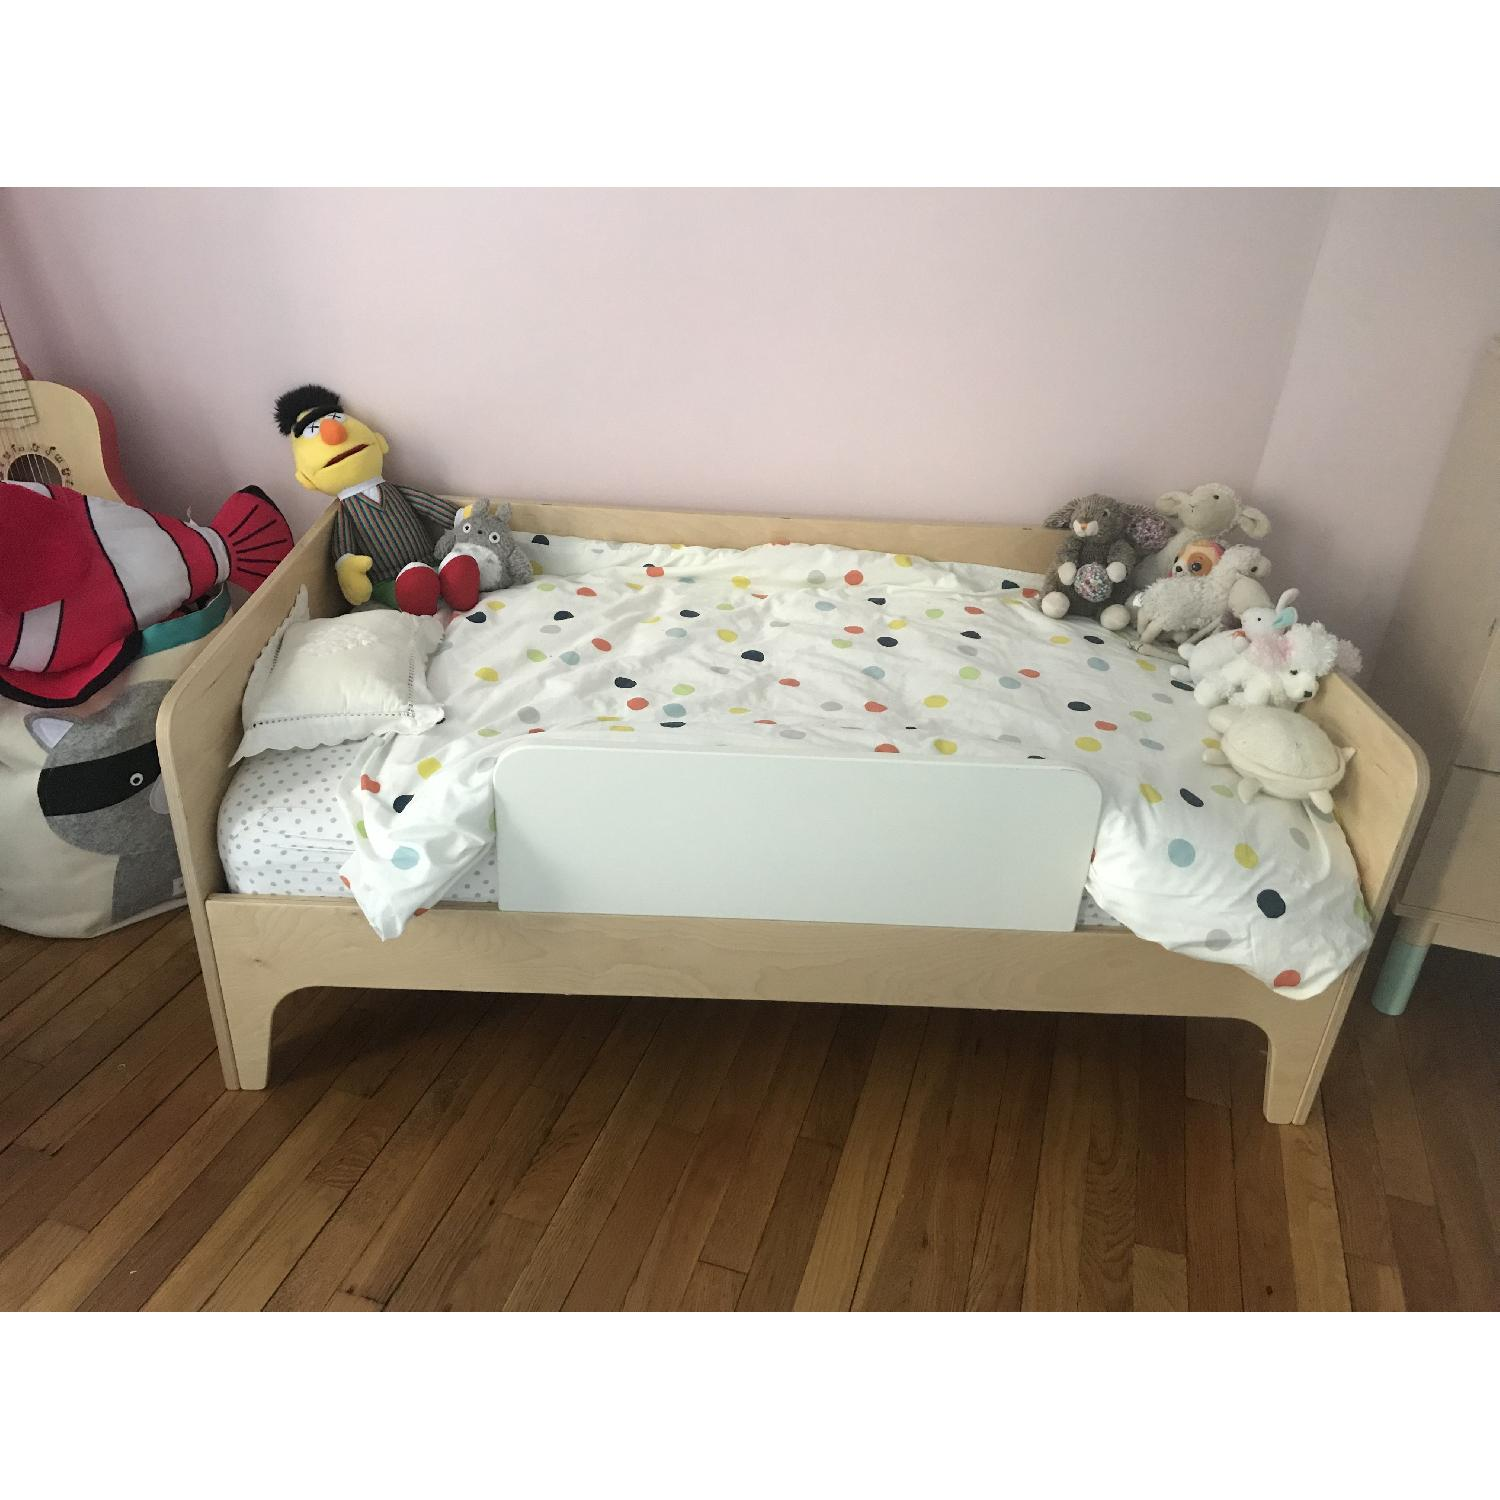 Oeuf Perch Toddler Bed-0